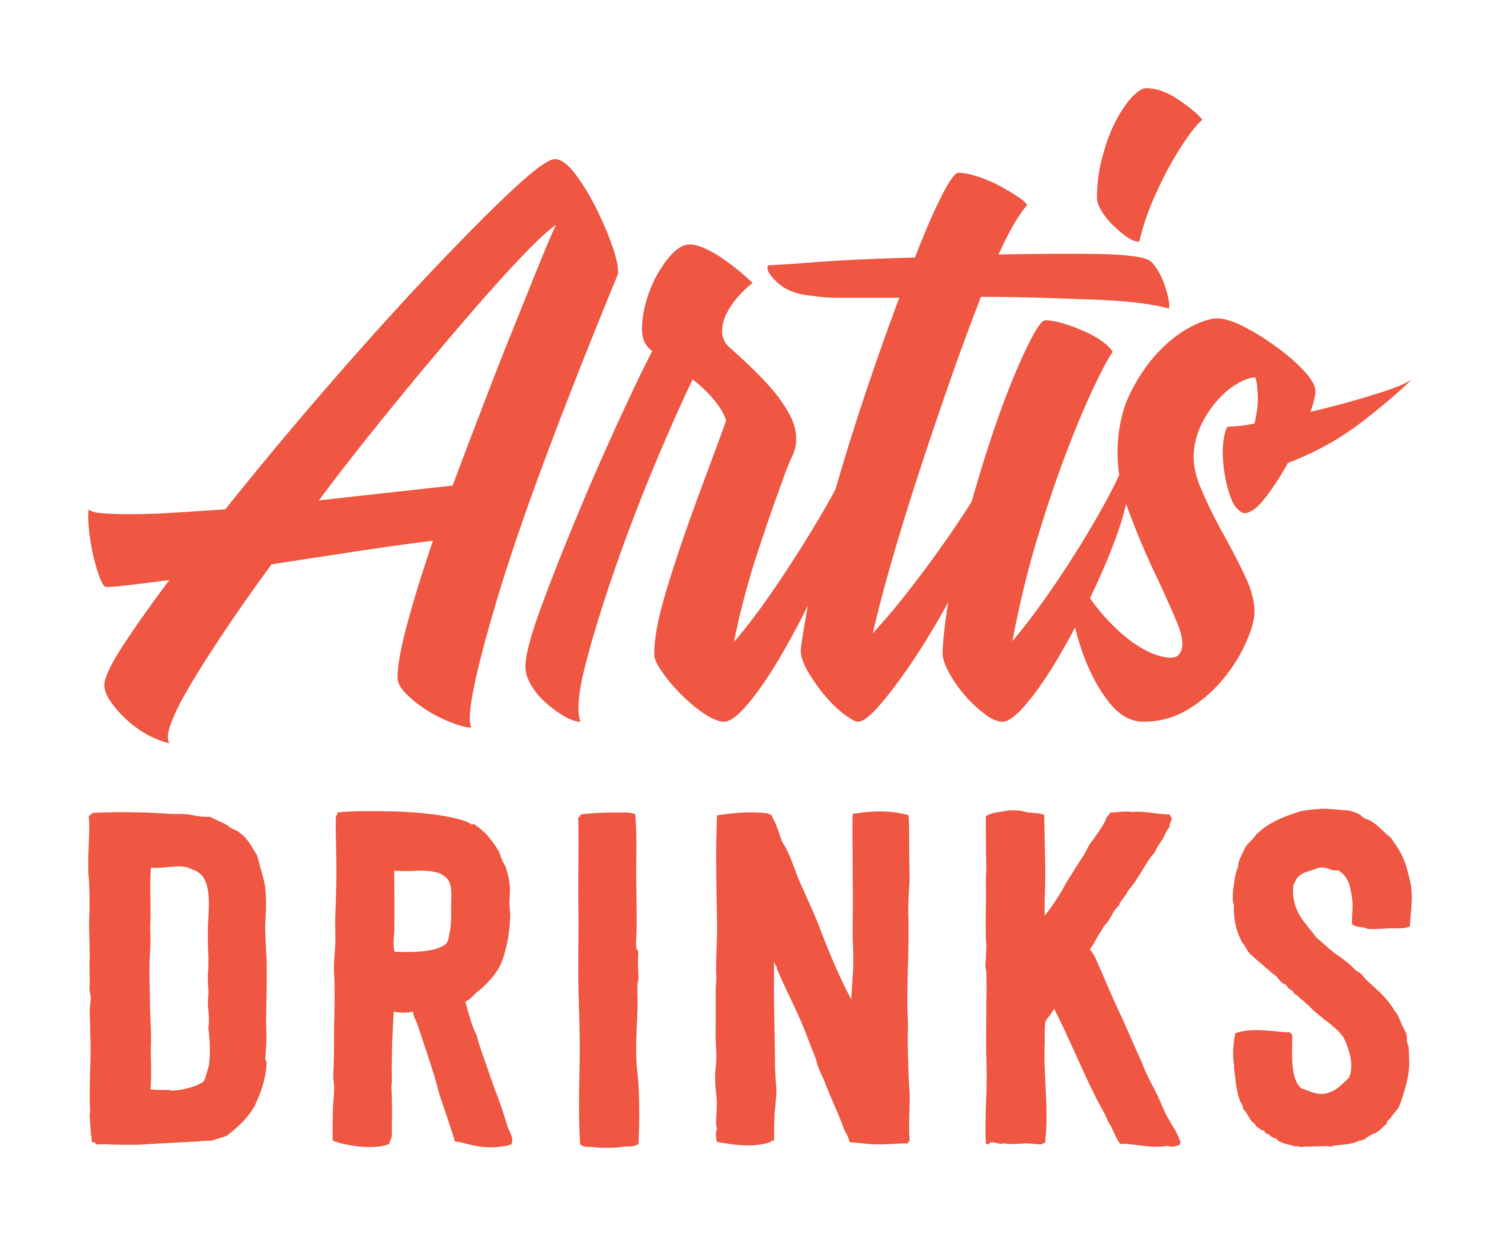 Artis Drinks